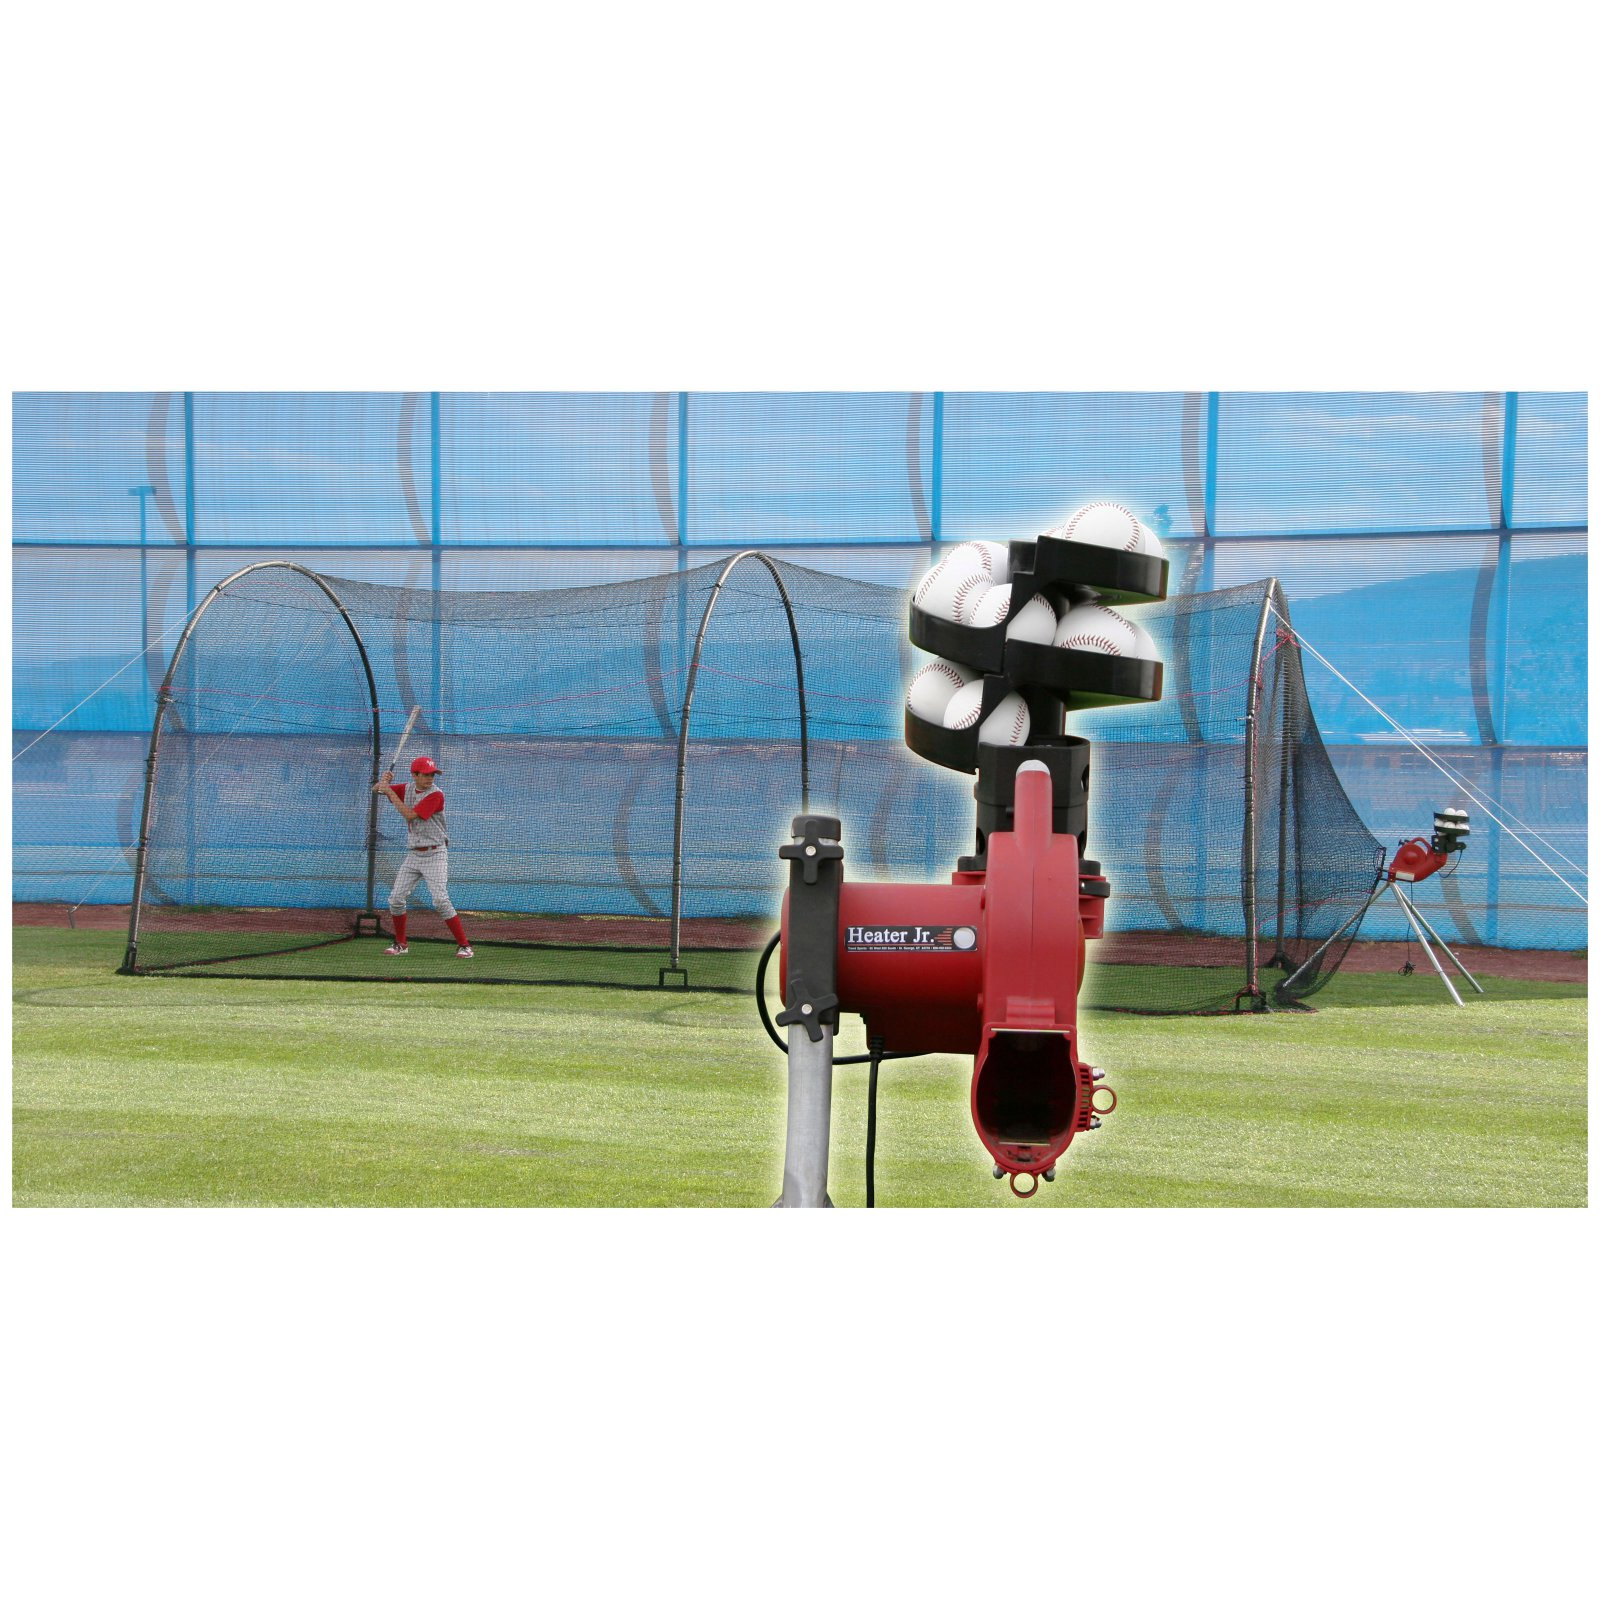 Heater Sports 24 ft. Jr. Pitching Machine & Xtender 24ft Batting Cage Package